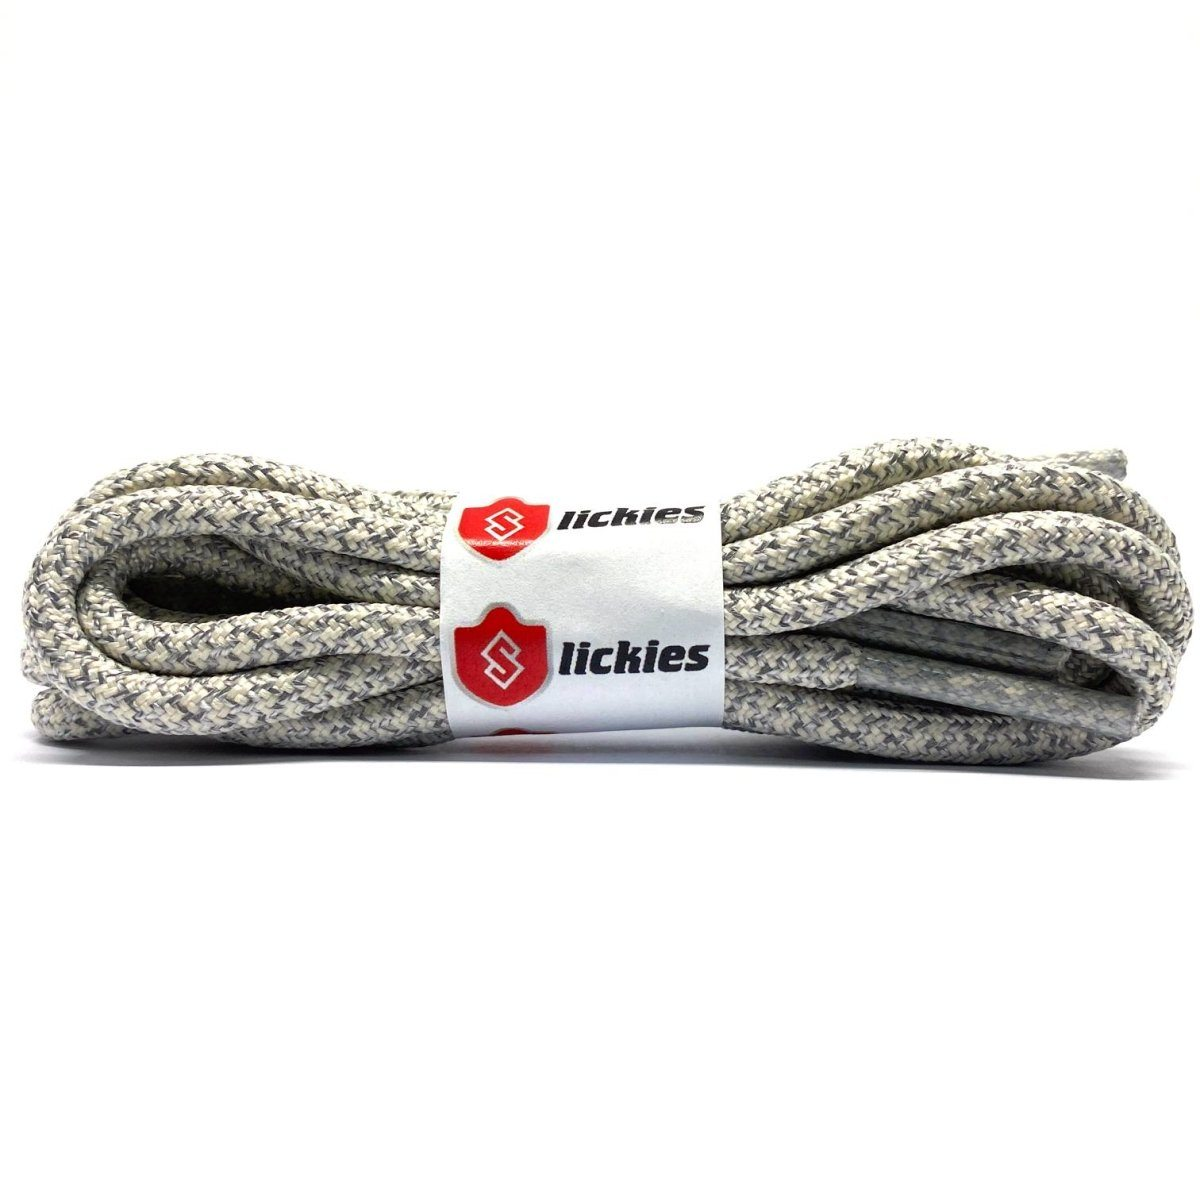 3M Rope - 3M Reflective Rope Laces V2 - Linen Cream For Yeezy Boost 350 V2 Linen